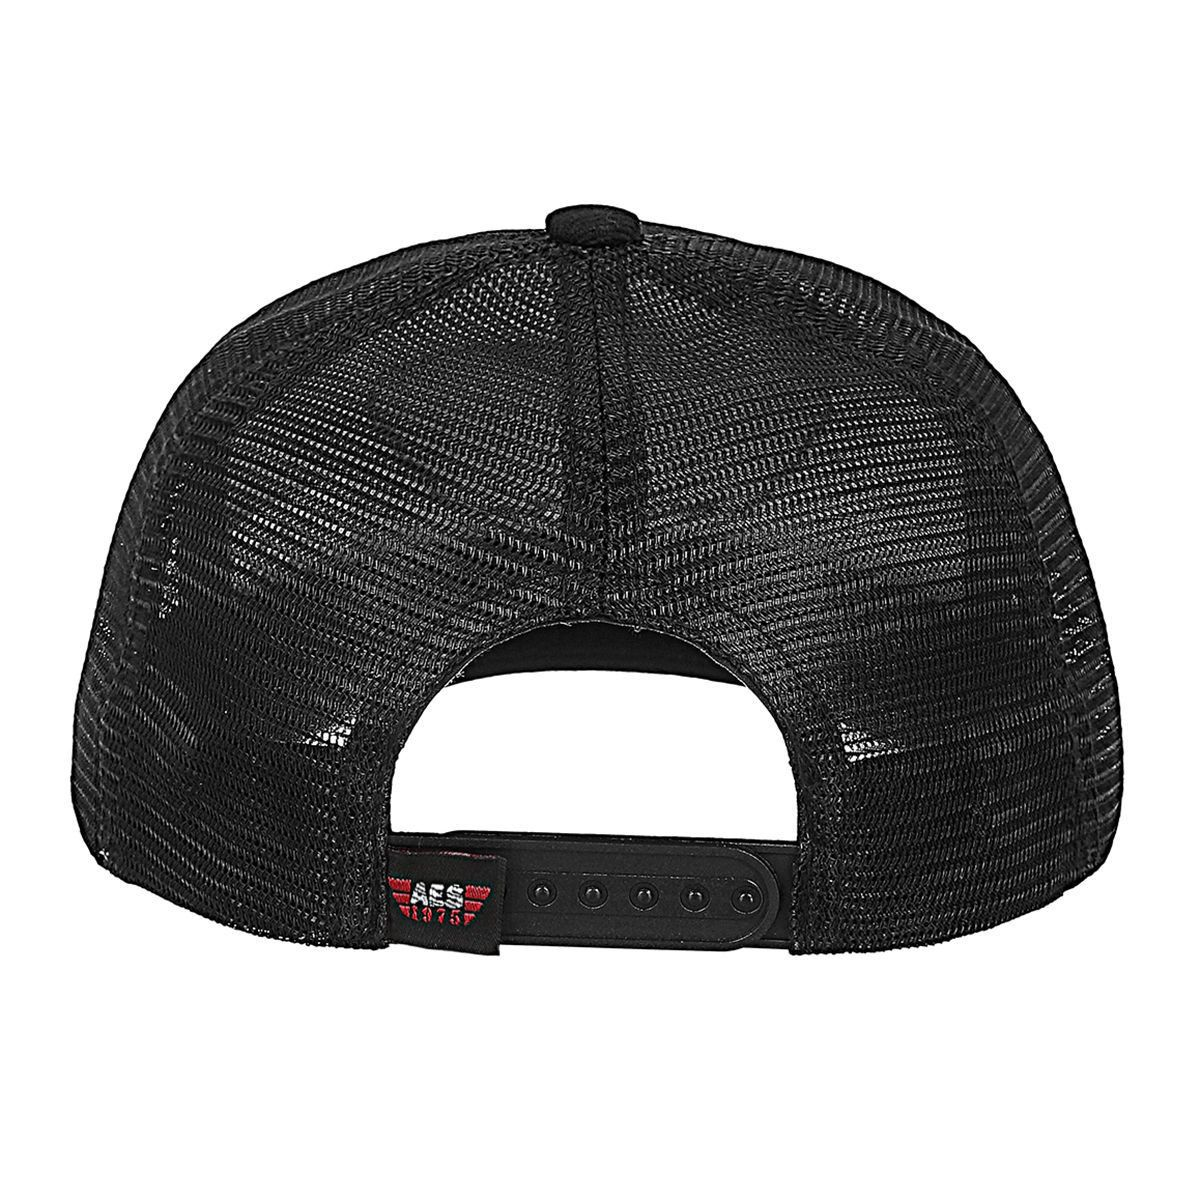 Boné AES 1975 Trucker Patch Preto